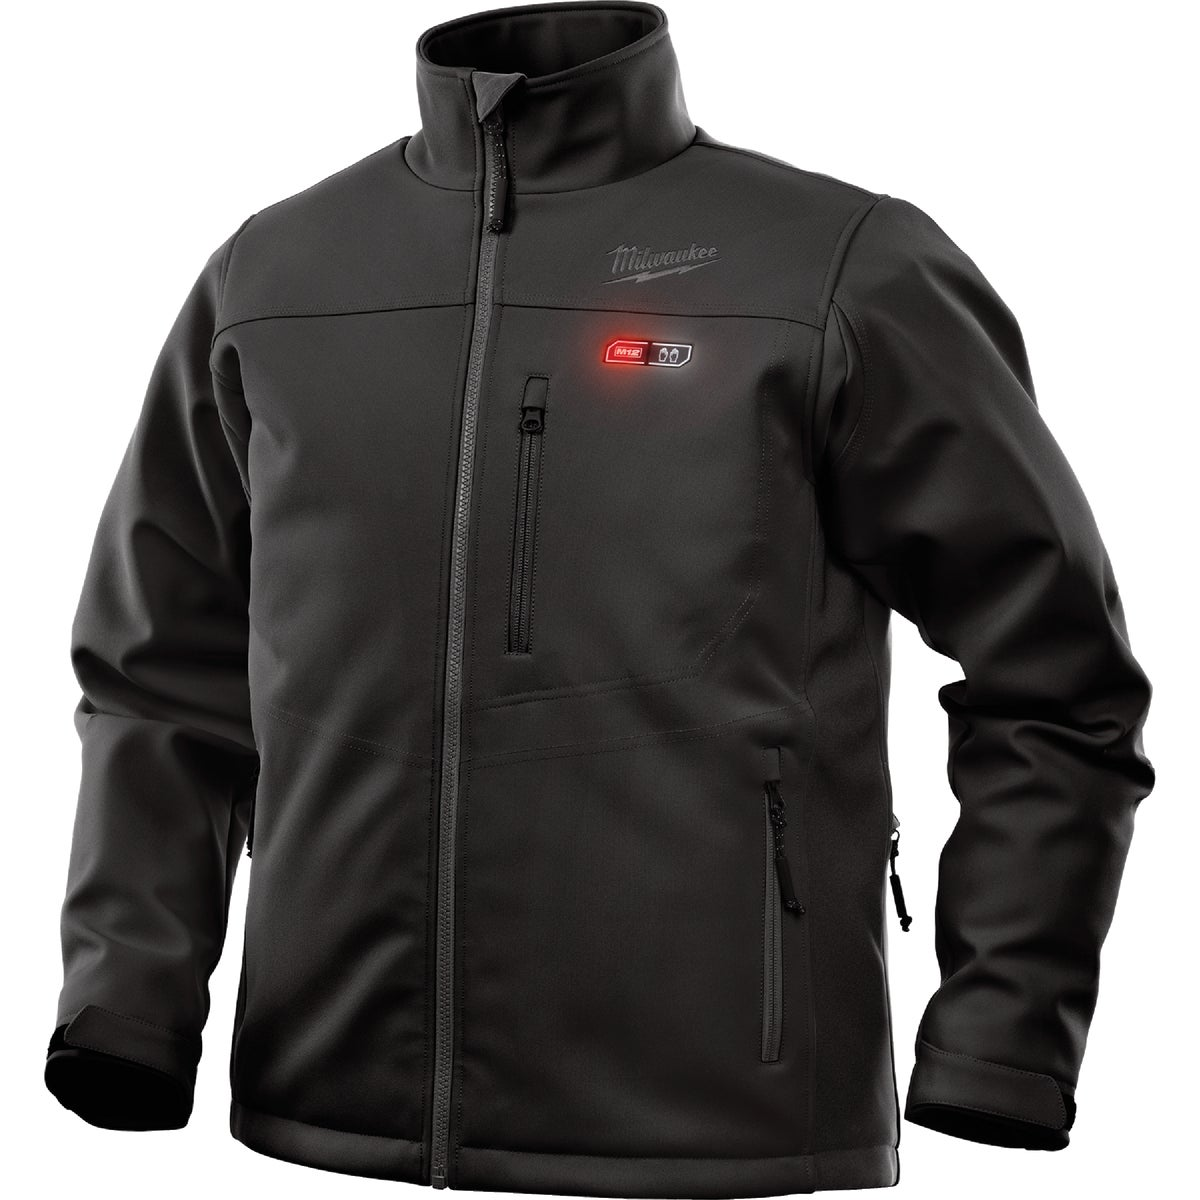 M12 2X BLK HEATED JACKET - 2345-2X by Milwaukee Elec Tool